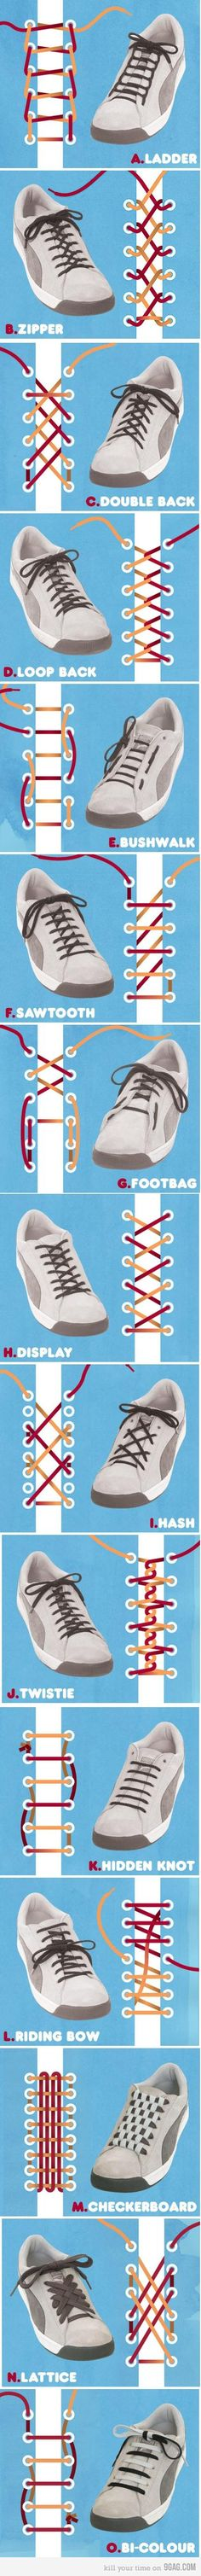 Different ways of tying shoe laces.